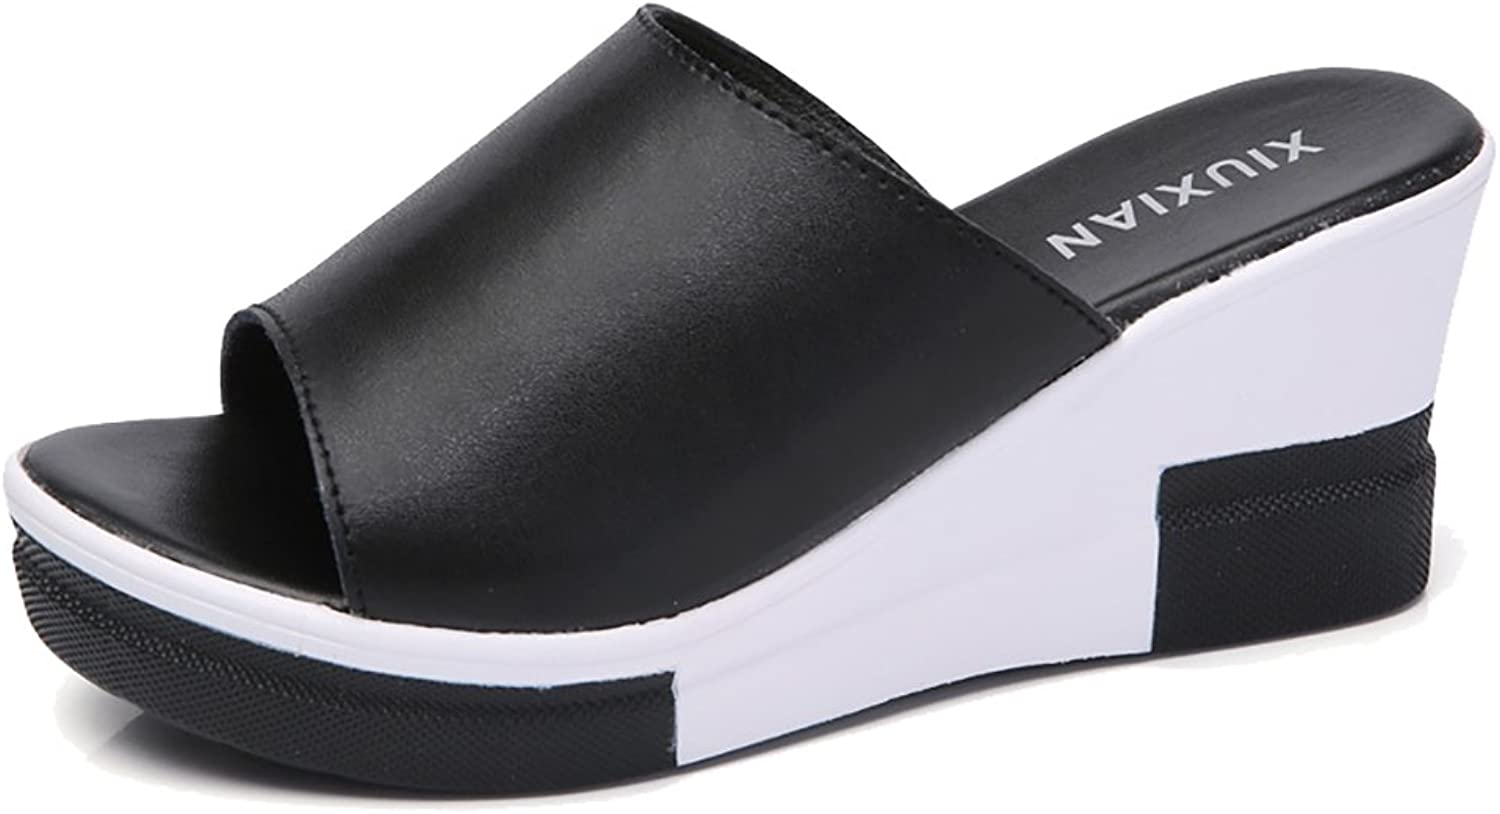 YVWTUC Women's Beach shoes Leather Comfort Non-Slip Slippers